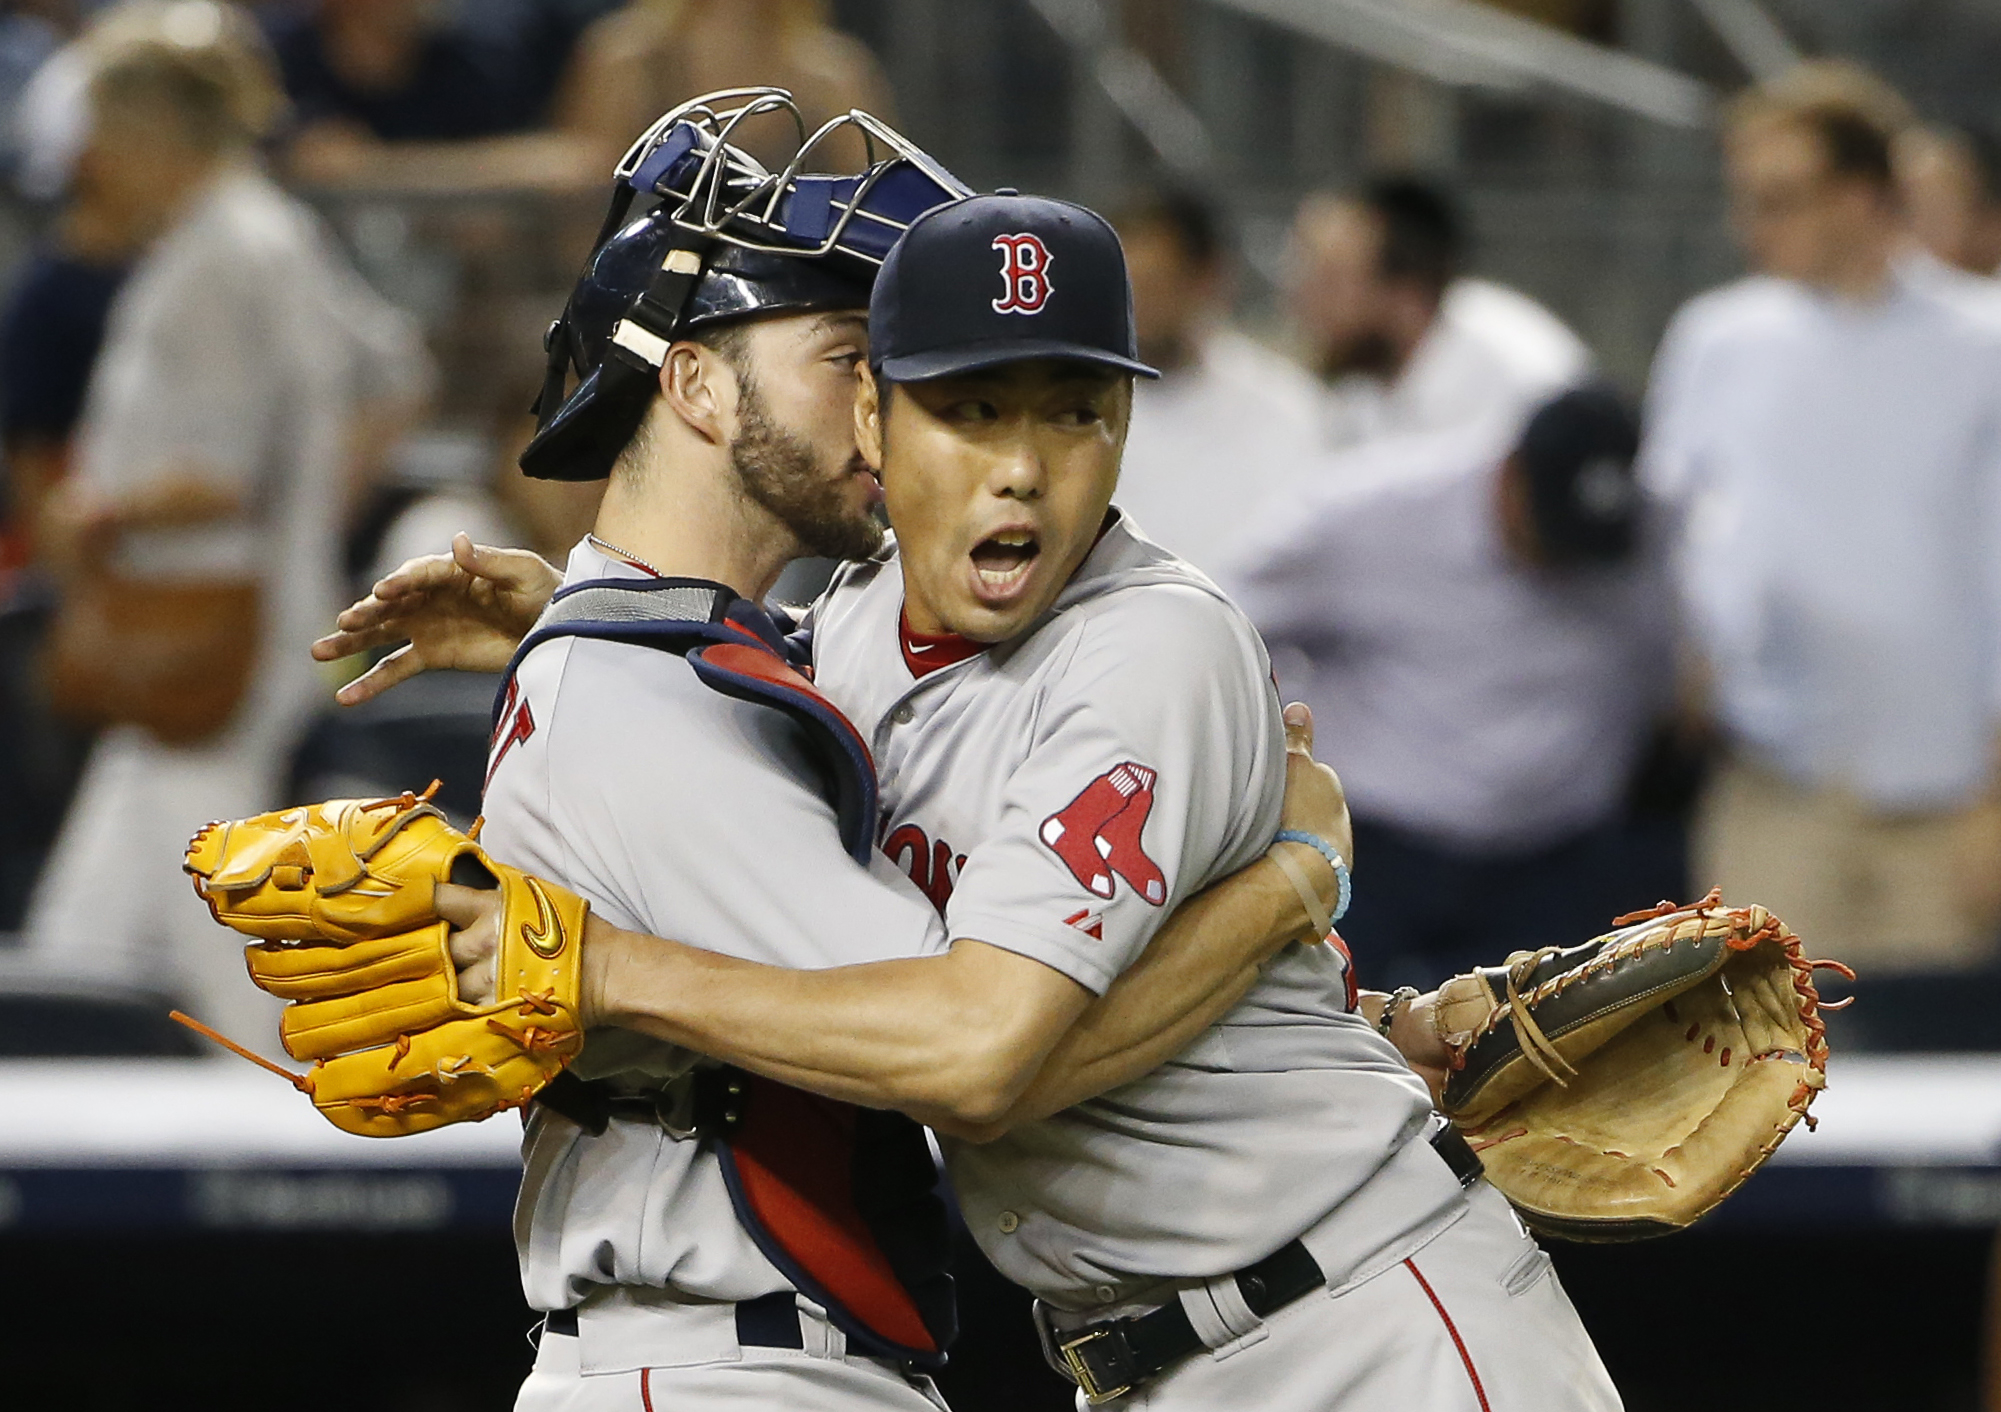 Boston Red Sox catcher Blake Swihart, left, embraces Red Sox relief pitcher Koji Uehara after Uehara earned the save in a 2-1 victory over the New York Yankees in a baseball game at Yankee Stadium in New York, Wednesday, Aug. 5, 2015. (AP Photo/Kathy Will